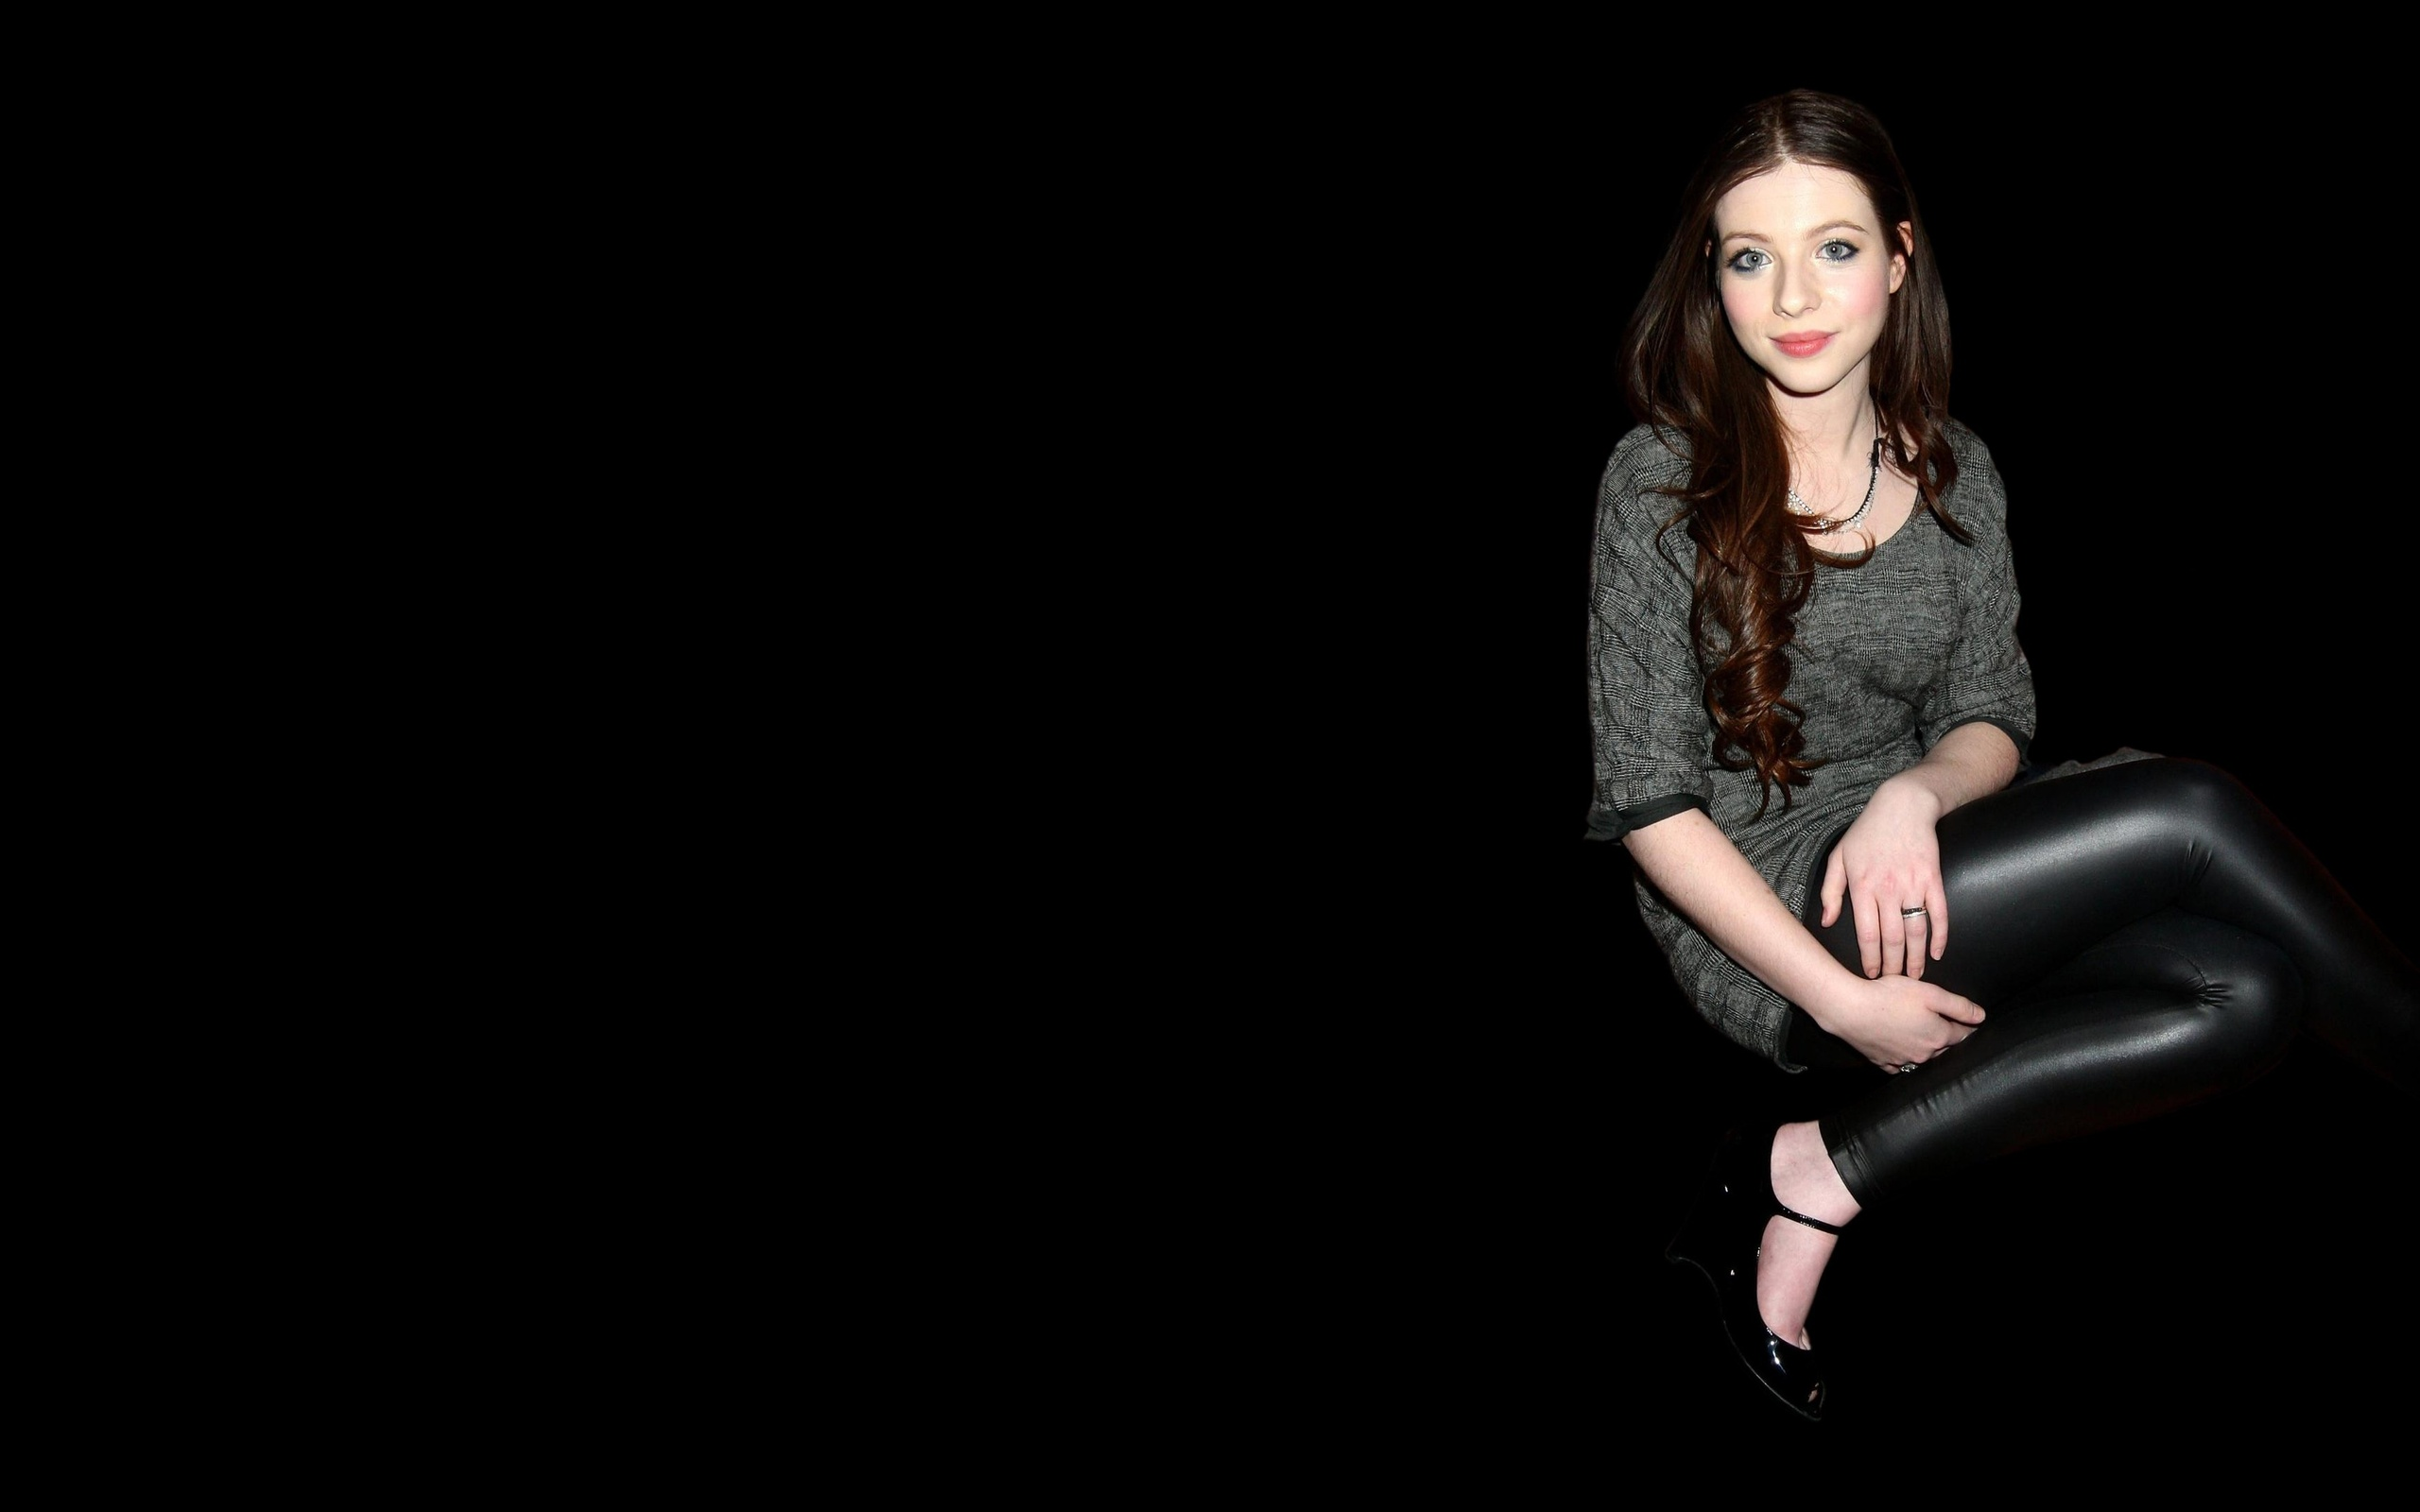 Michelle Trachtenberg Background